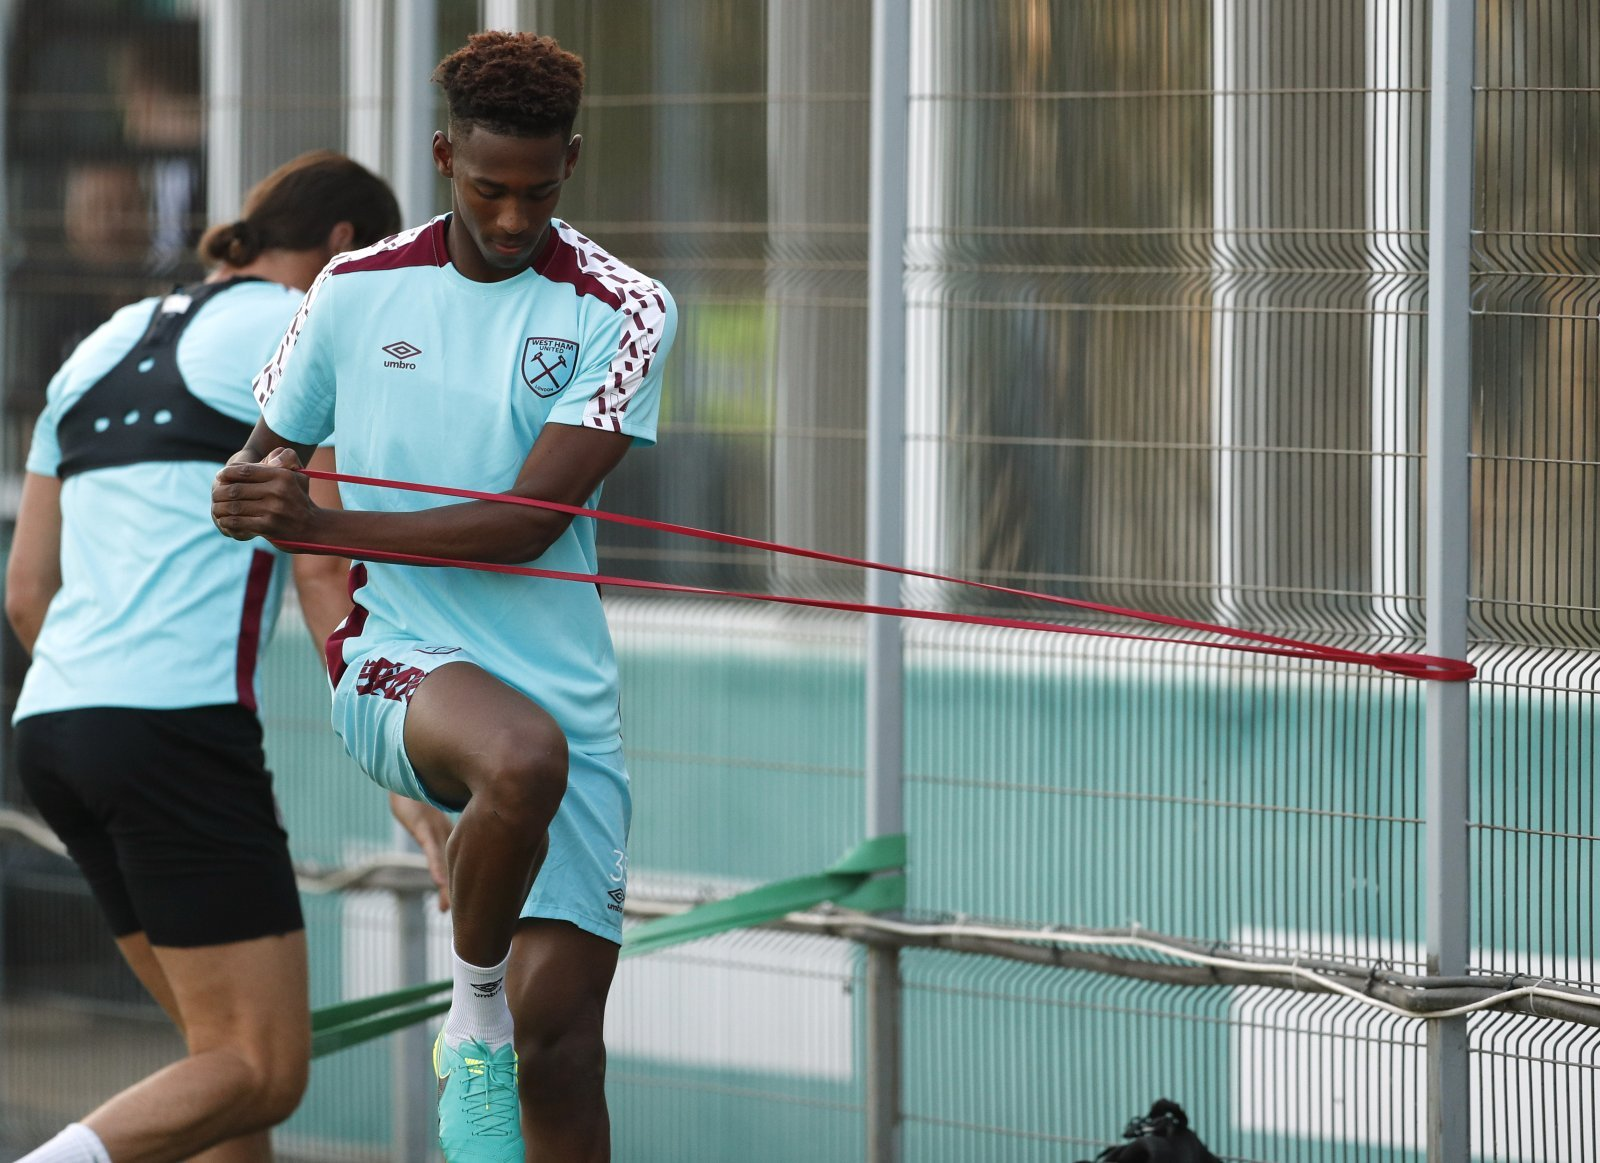 West Ham considering two offers for Reece Oxford